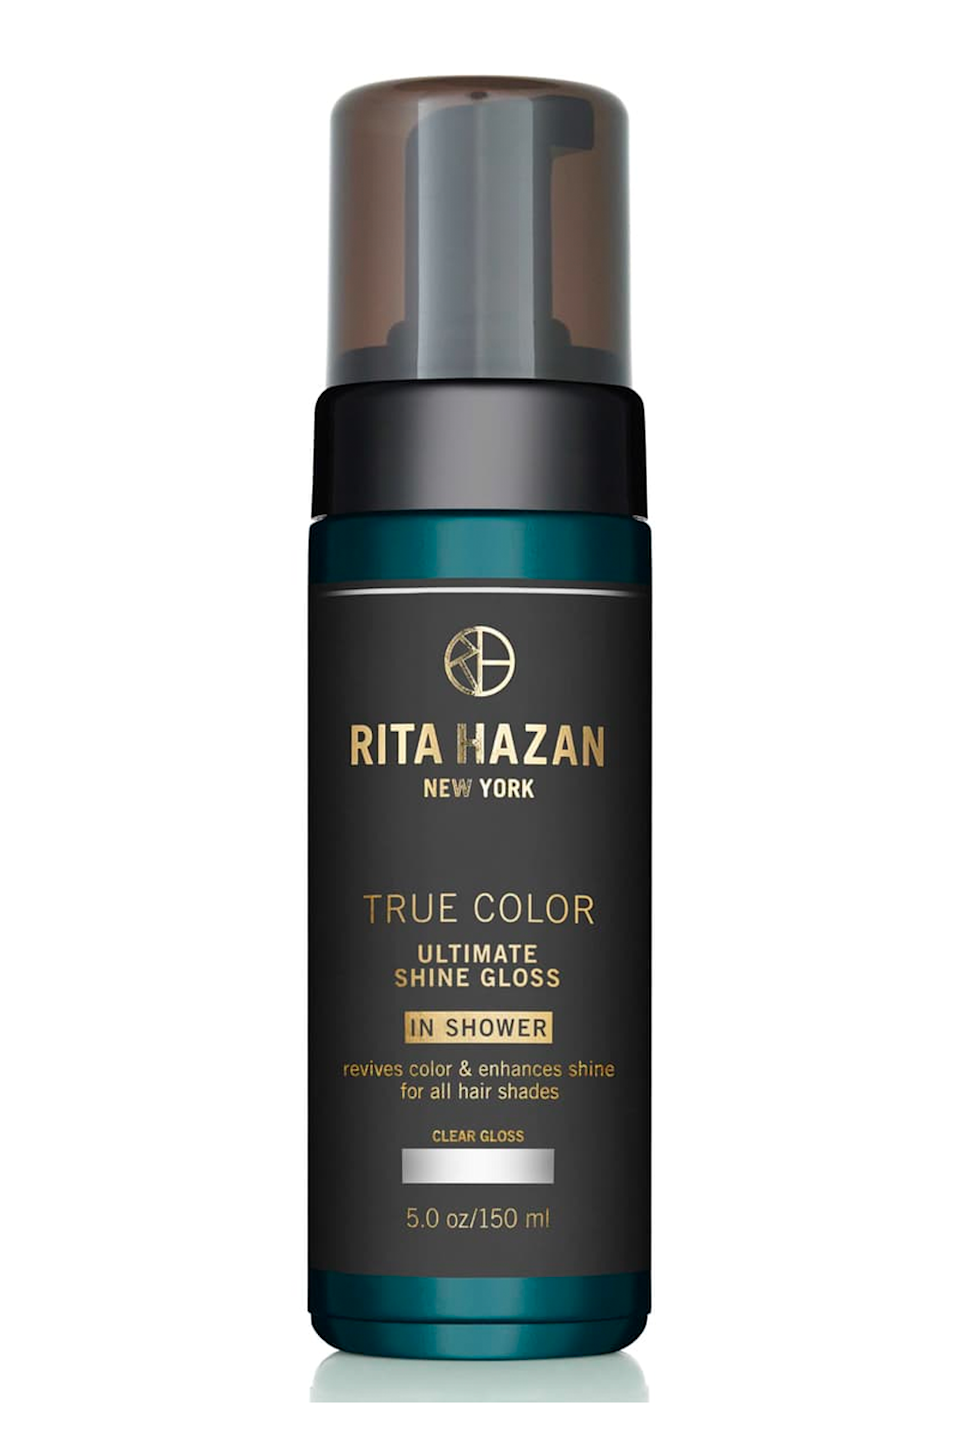 """<p><strong>Rita Hazan</strong></p><p>revolve.com</p><p><strong>$26.00</strong></p><p><a href=""""https://go.redirectingat.com?id=74968X1596630&url=https%3A%2F%2Fwww.revolve.com%2Frita-hazan-true-color-ultimate-shine-gloss-in-brown%2Fdp%2FRTHZ-WU9%2F&sref=https%3A%2F%2Fwww.cosmopolitan.com%2Fstyle-beauty%2Fbeauty%2Fg33576495%2Fbest-hair-toner%2F"""" rel=""""nofollow noopener"""" target=""""_blank"""" data-ylk=""""slk:Shop Now"""" class=""""link rapid-noclick-resp"""">Shop Now</a></p><p>Unlike toners that are limited to weekly or bi-weekly use, this in-shower gloss <strong>can be used up to four times a week</strong>. It comes in five shades and works to cancel out harsh, brassy tones in between salon appointments. Lather a pump through your hair after shampooing, leave it on for three to five minutes, rinse, and follow with <a href=""""https://go.redirectingat.com?id=74968X1596630&url=https%3A%2F%2Fwww.ulta.com%2Fp%2Fall-soft-conditioner-xlsImpprod15511073&sref=https%3A%2F%2Fwww.cosmopolitan.com%2Fstyle-beauty%2Fbeauty%2Fg33576495%2Fbest-hair-toner%2F"""" rel=""""nofollow noopener"""" target=""""_blank"""" data-ylk=""""slk:conditioner"""" class=""""link rapid-noclick-resp"""">conditioner</a>.</p>"""